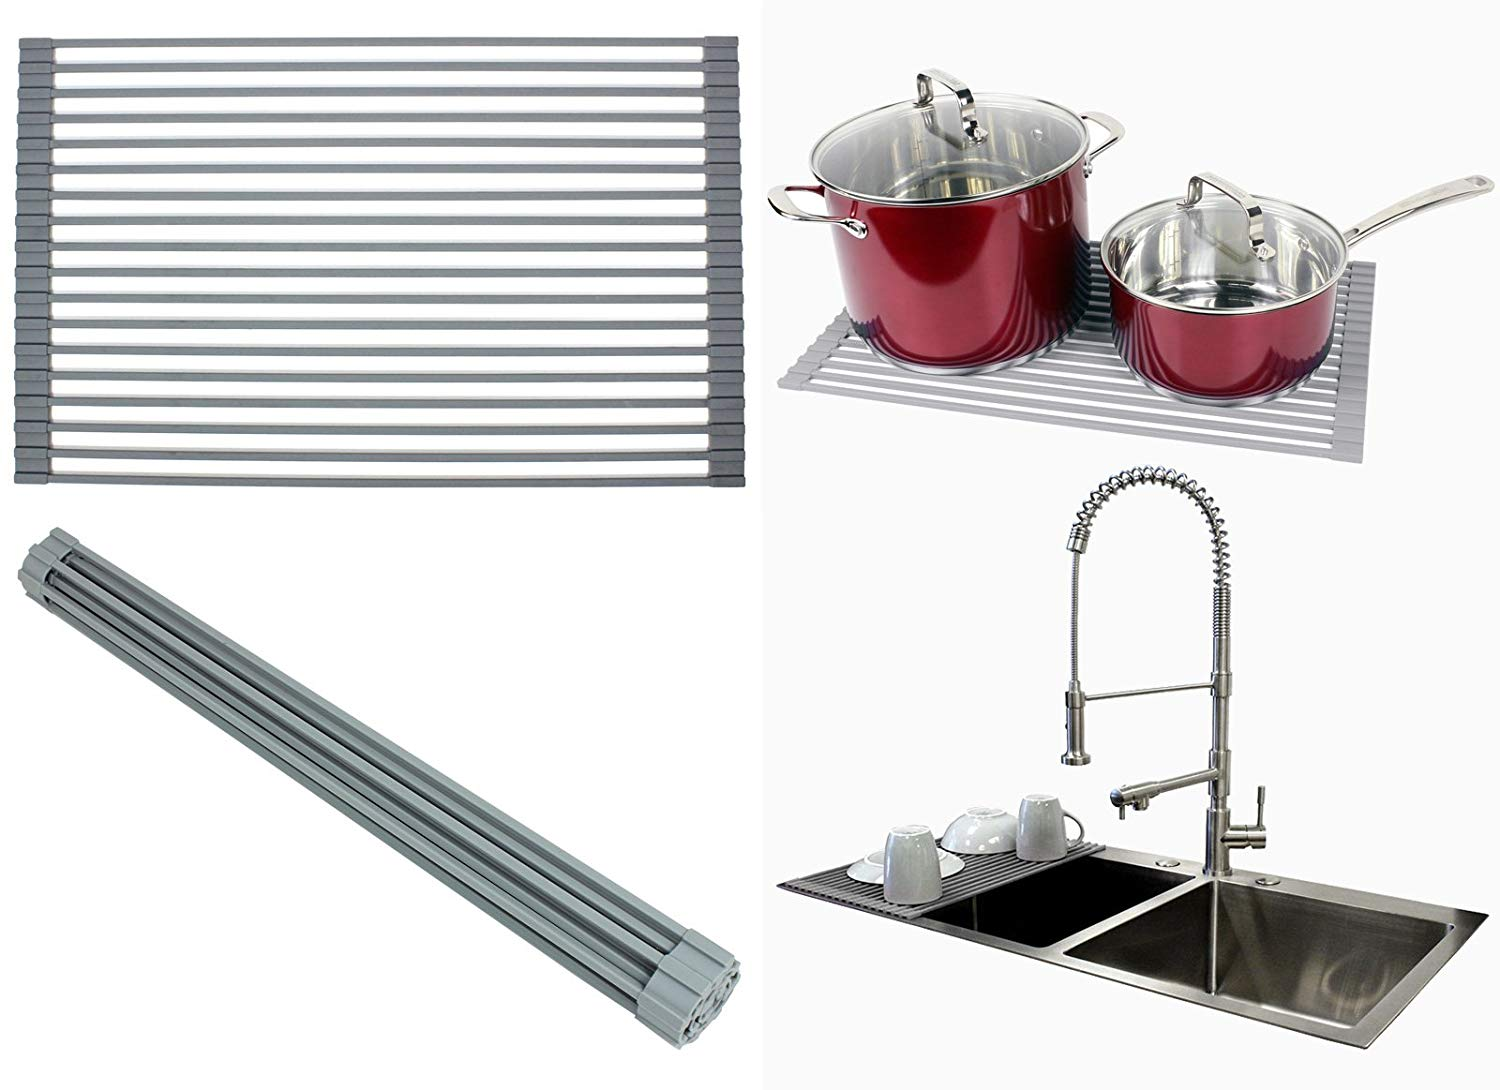 Ariel Over the Sink / Countertop Multipurpose Roll-Up Dish Drying Rack (Gray) - Silicone Coated Stainless Steel - Flat Stripe Design - Dishwasher Safe, Heat Resistant, Trivet, Colander, Food Defrost